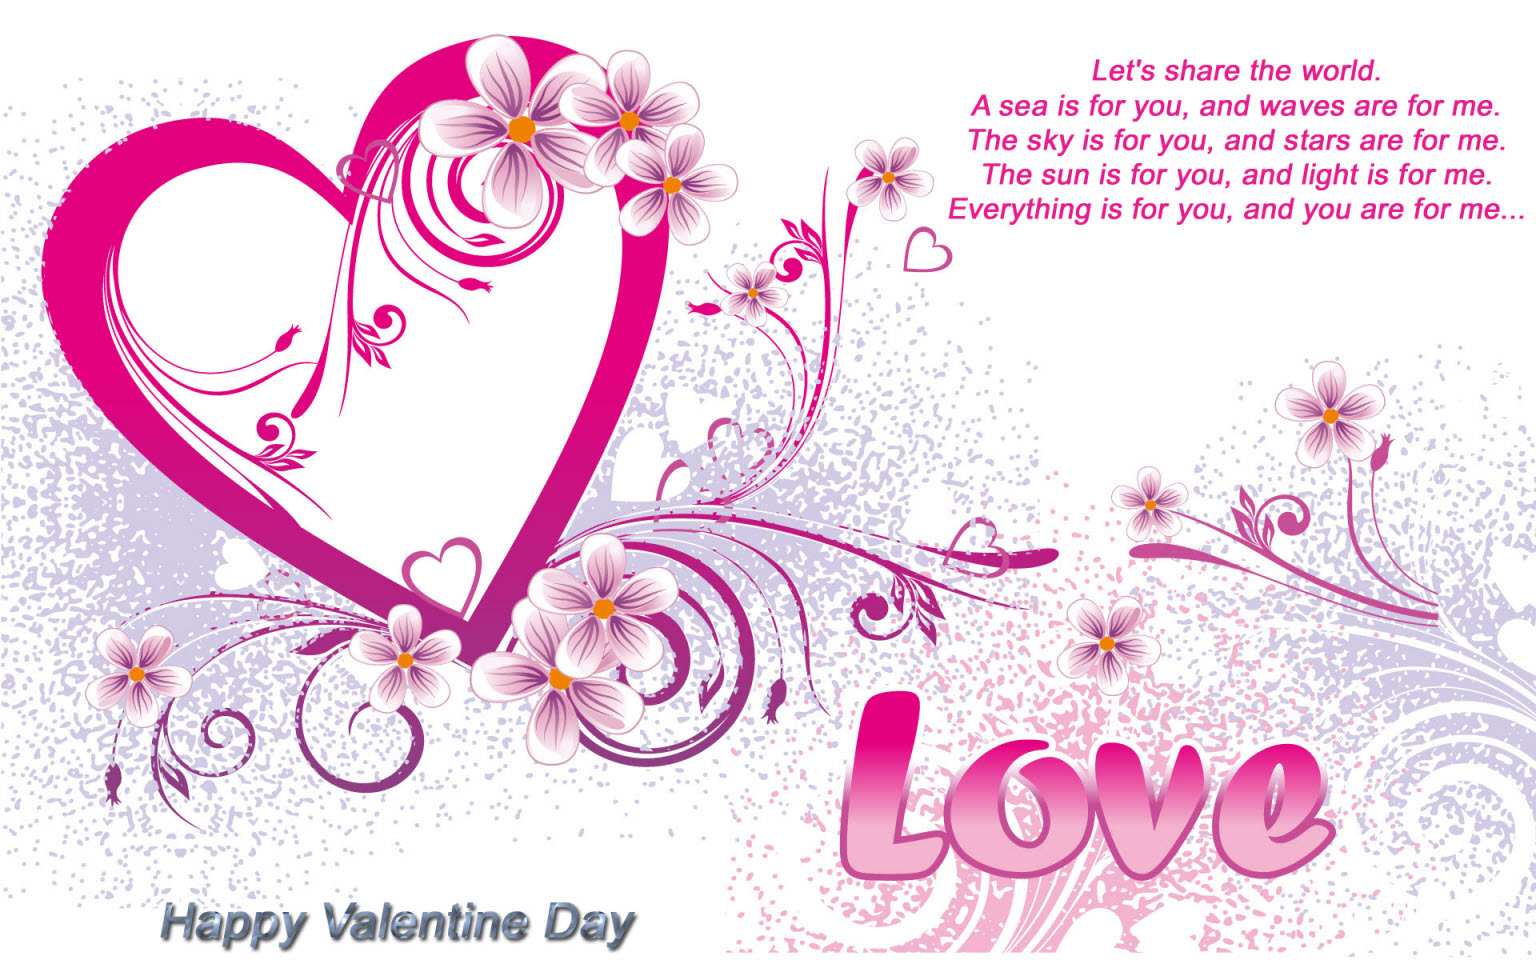 Valentines Day Greeting Cards For Girlfriend. 1536 x 960.Happy Valentine Day Message For Friends